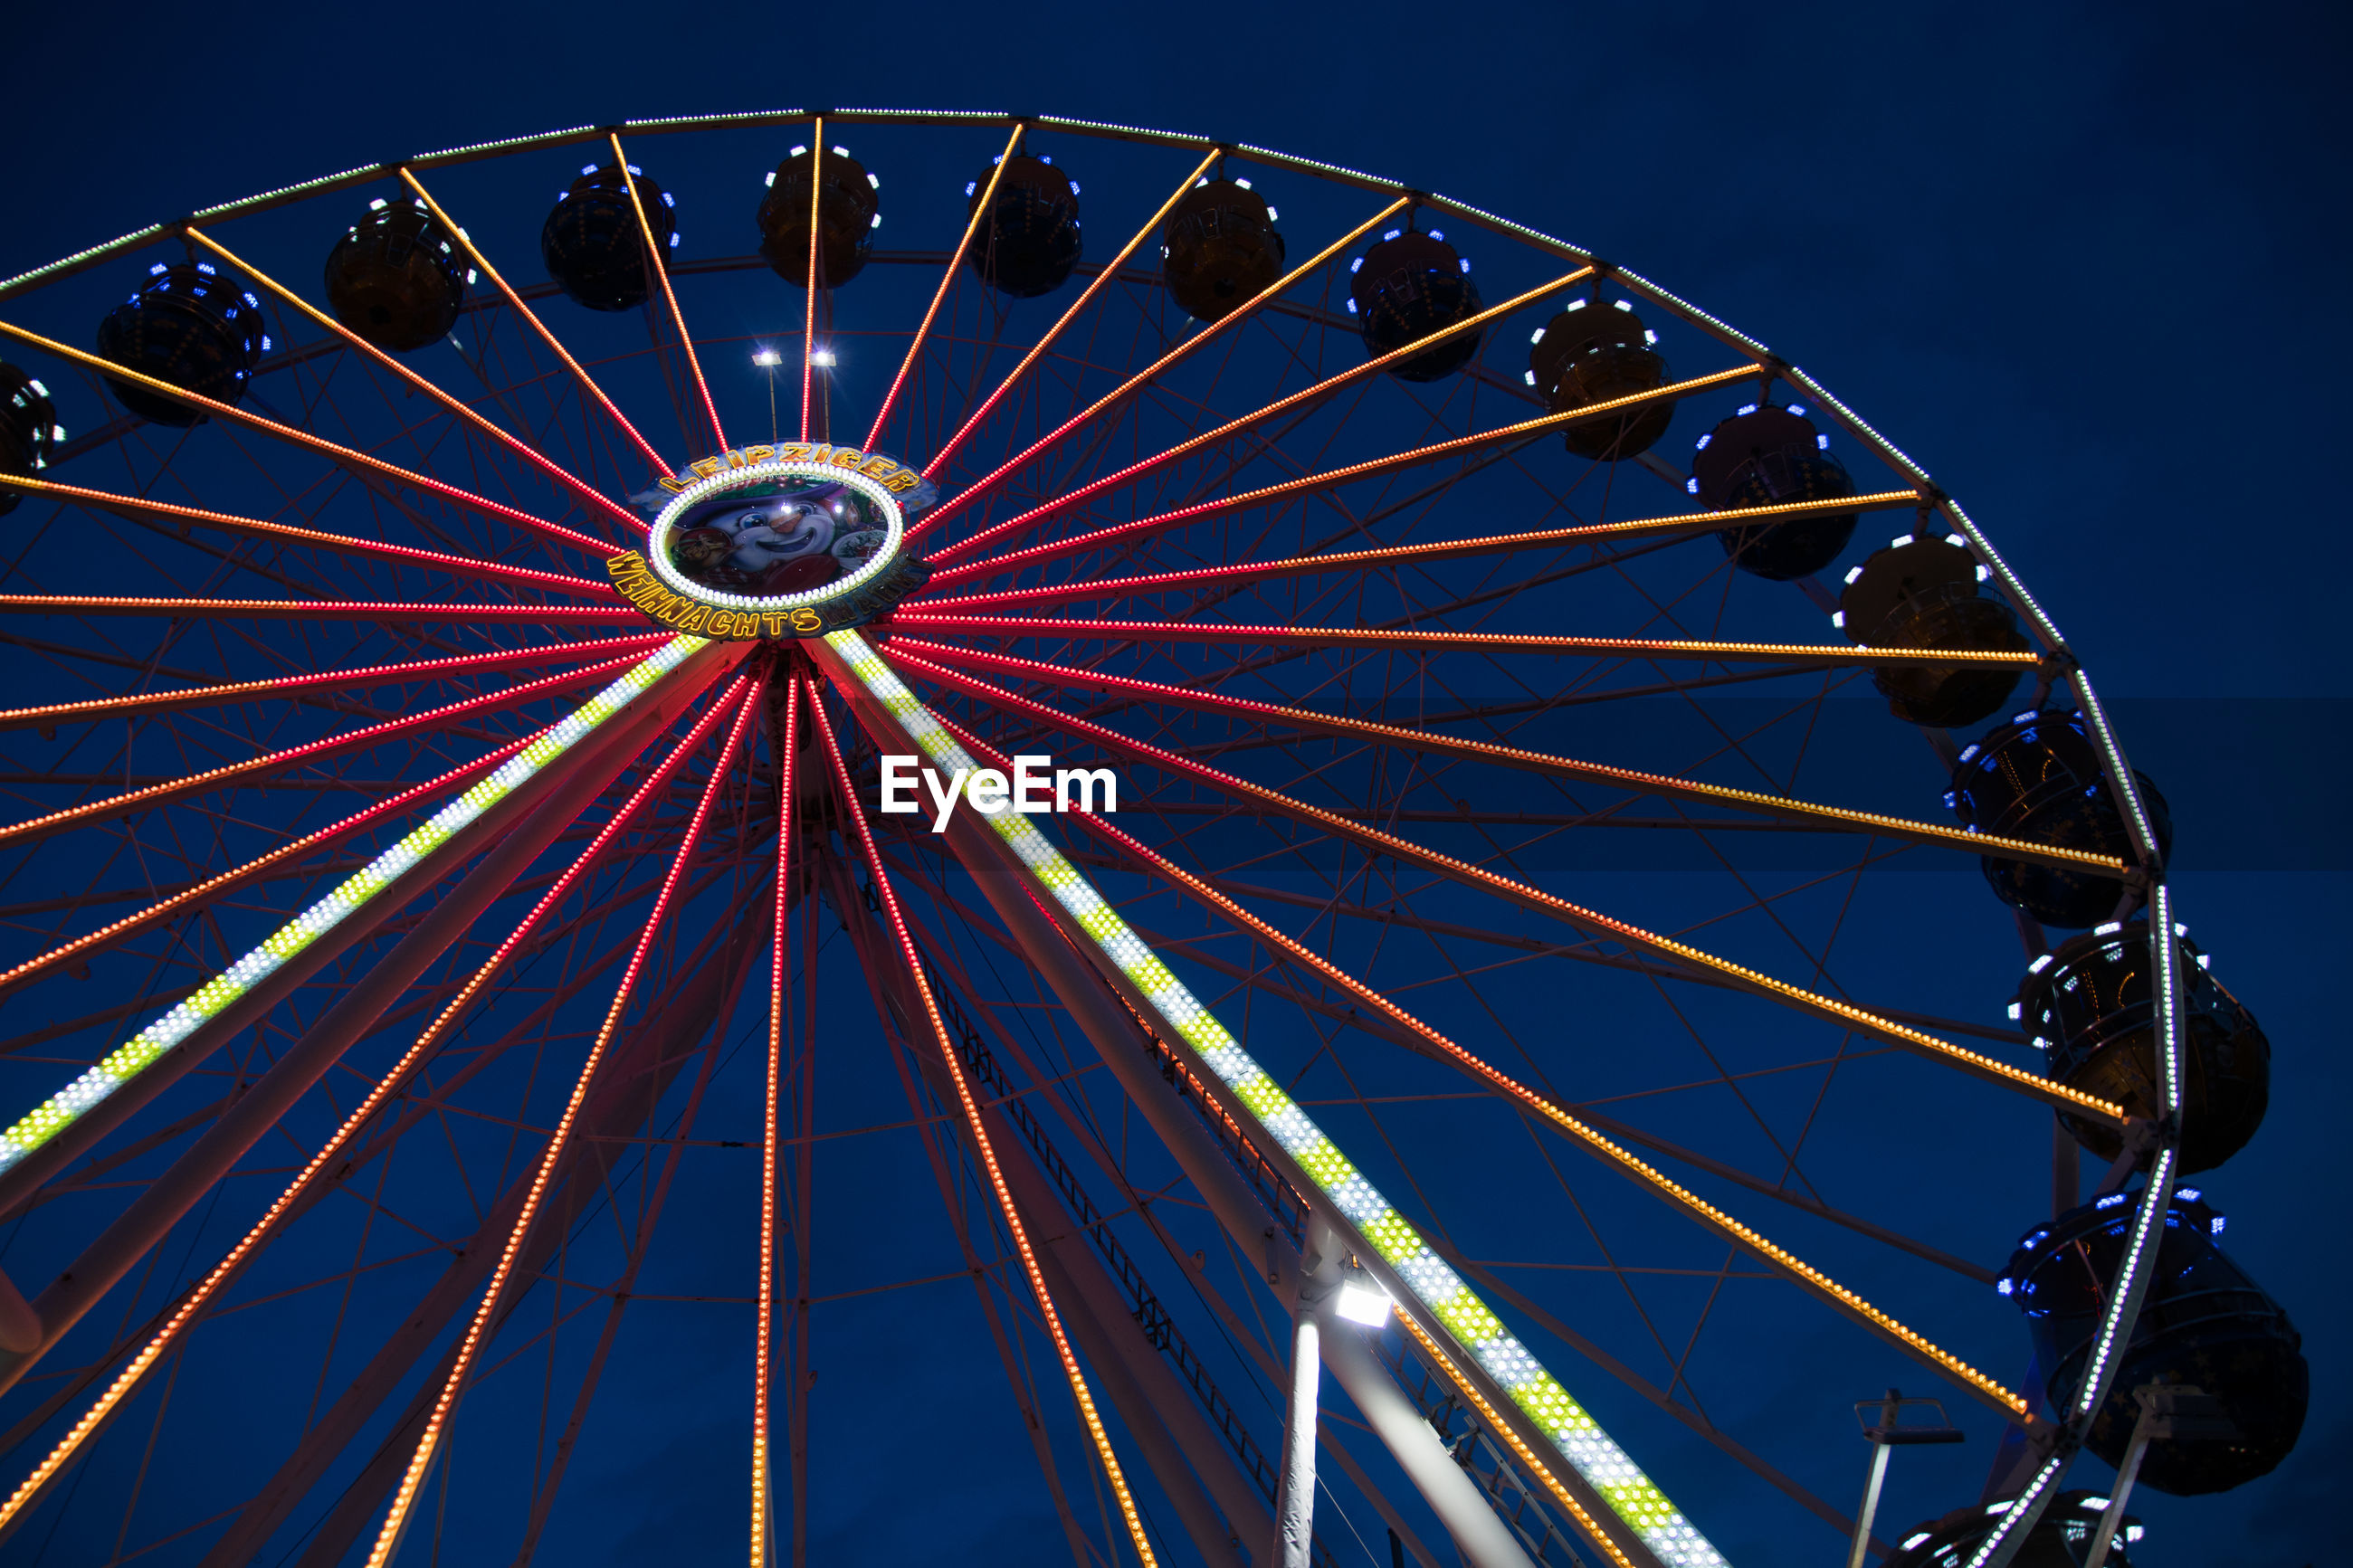 LOW ANGLE VIEW OF ILLUMINATED FERRIS WHEEL AGAINST CLEAR SKY